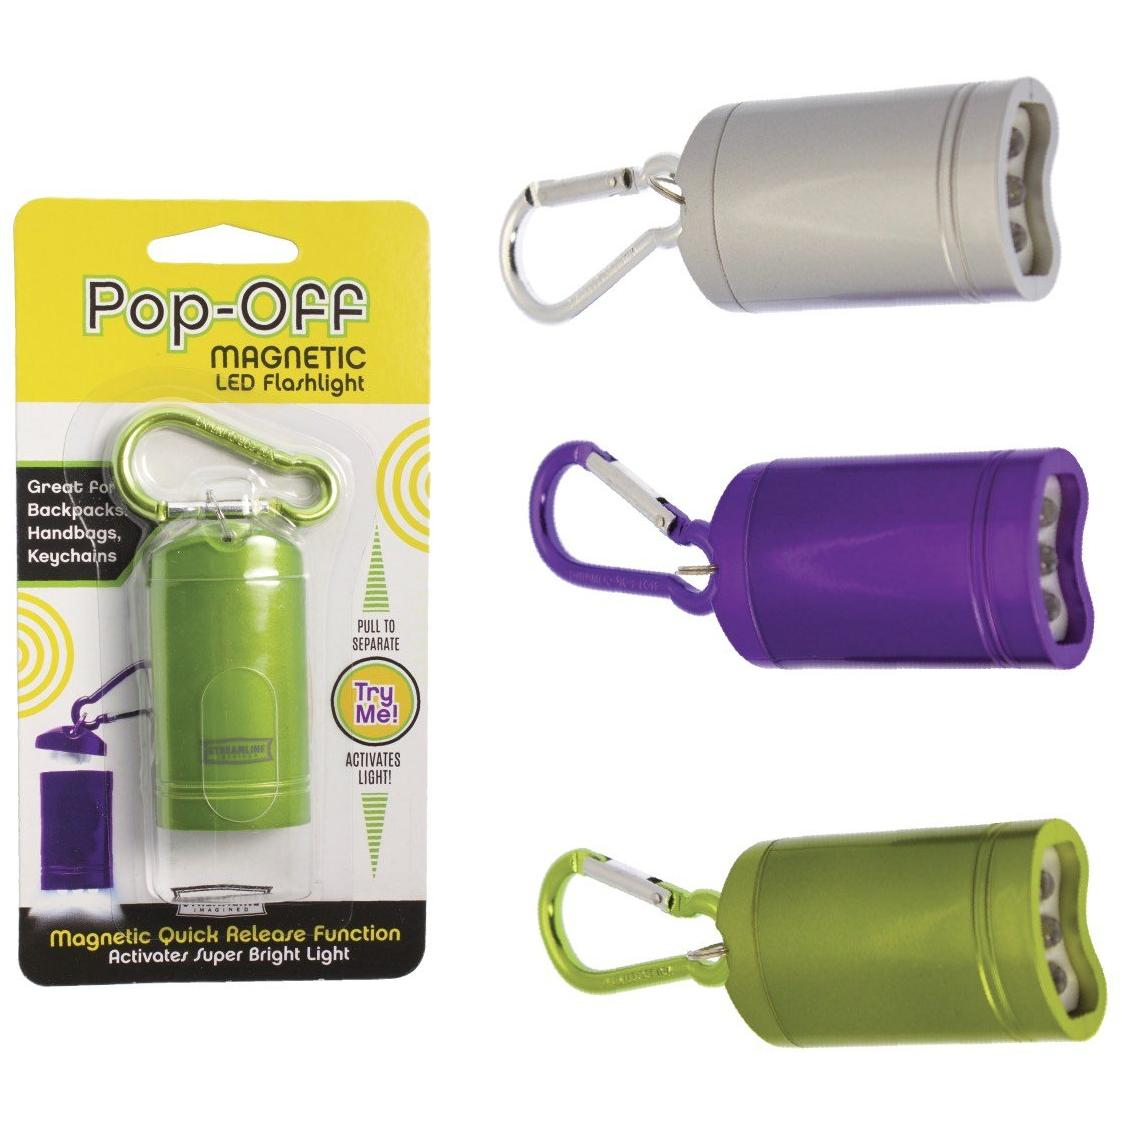 Pop-Off Magnetic LED Flashlight